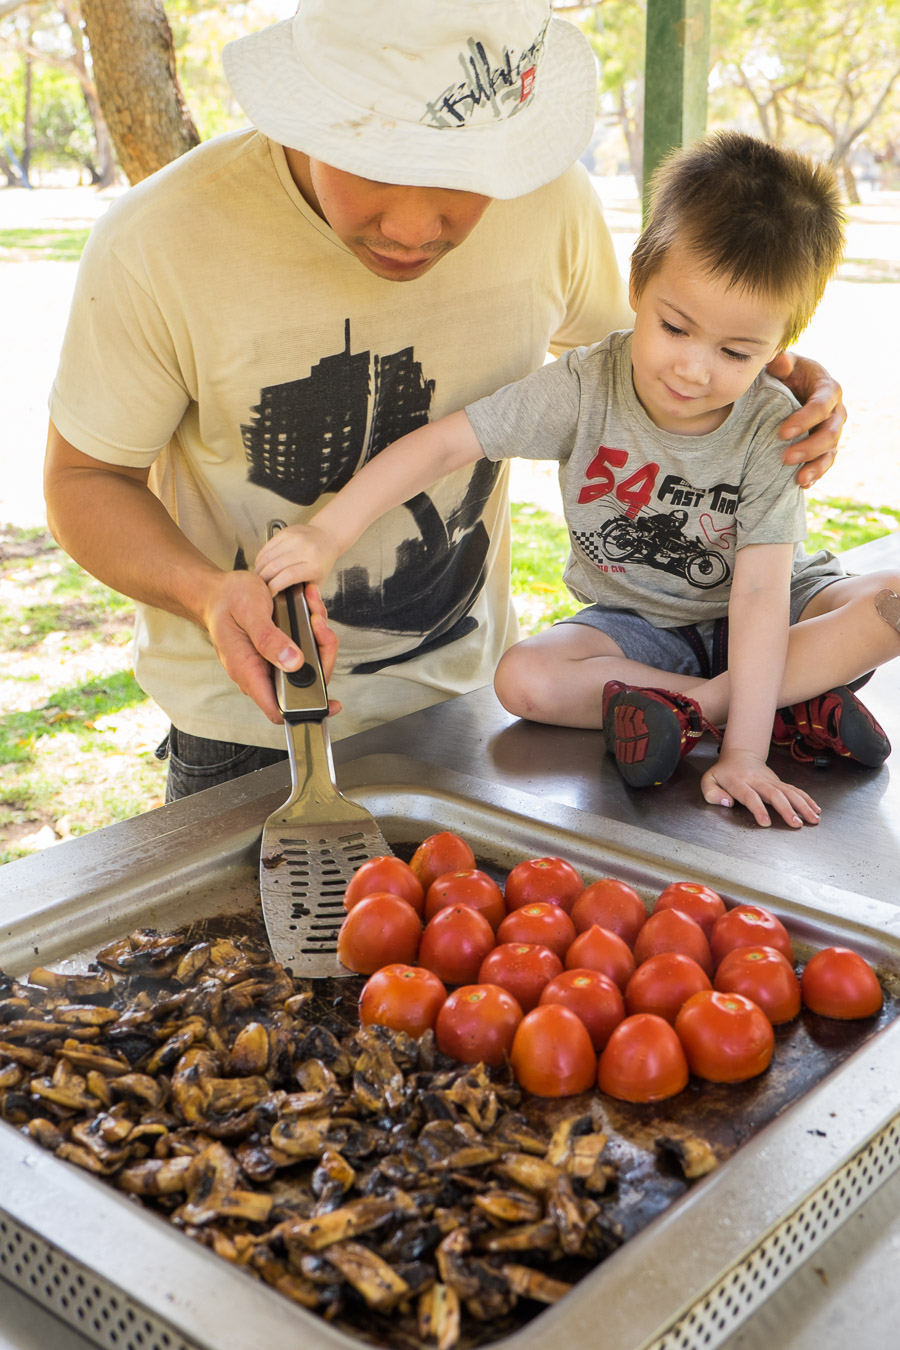 Caleb helps flip the tomatoes